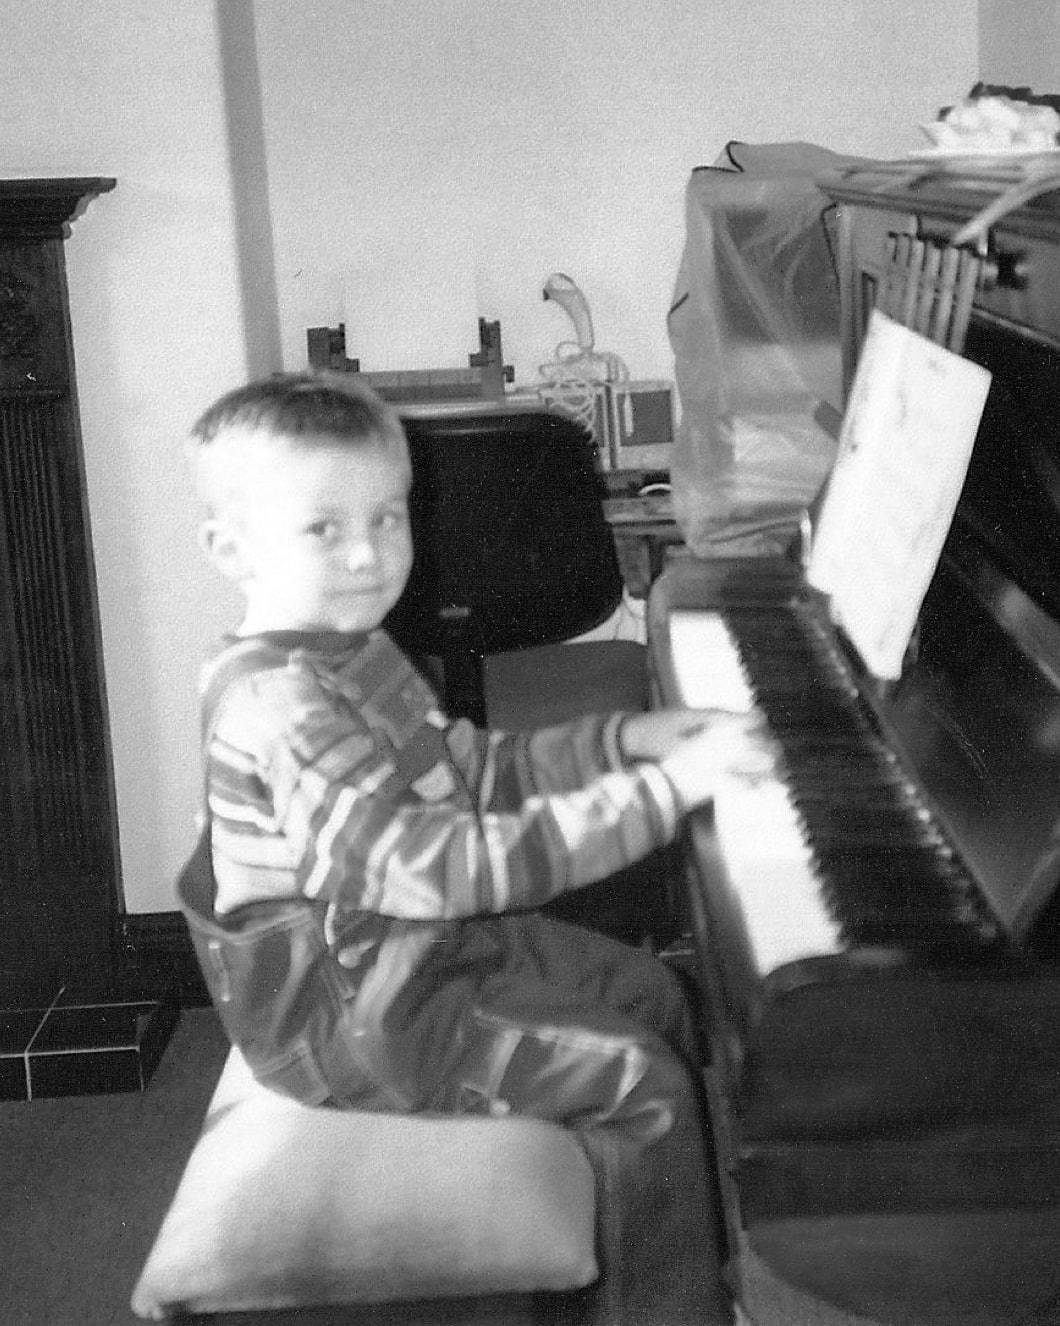 Jack Watkins as a young child playing the piano, in black and white